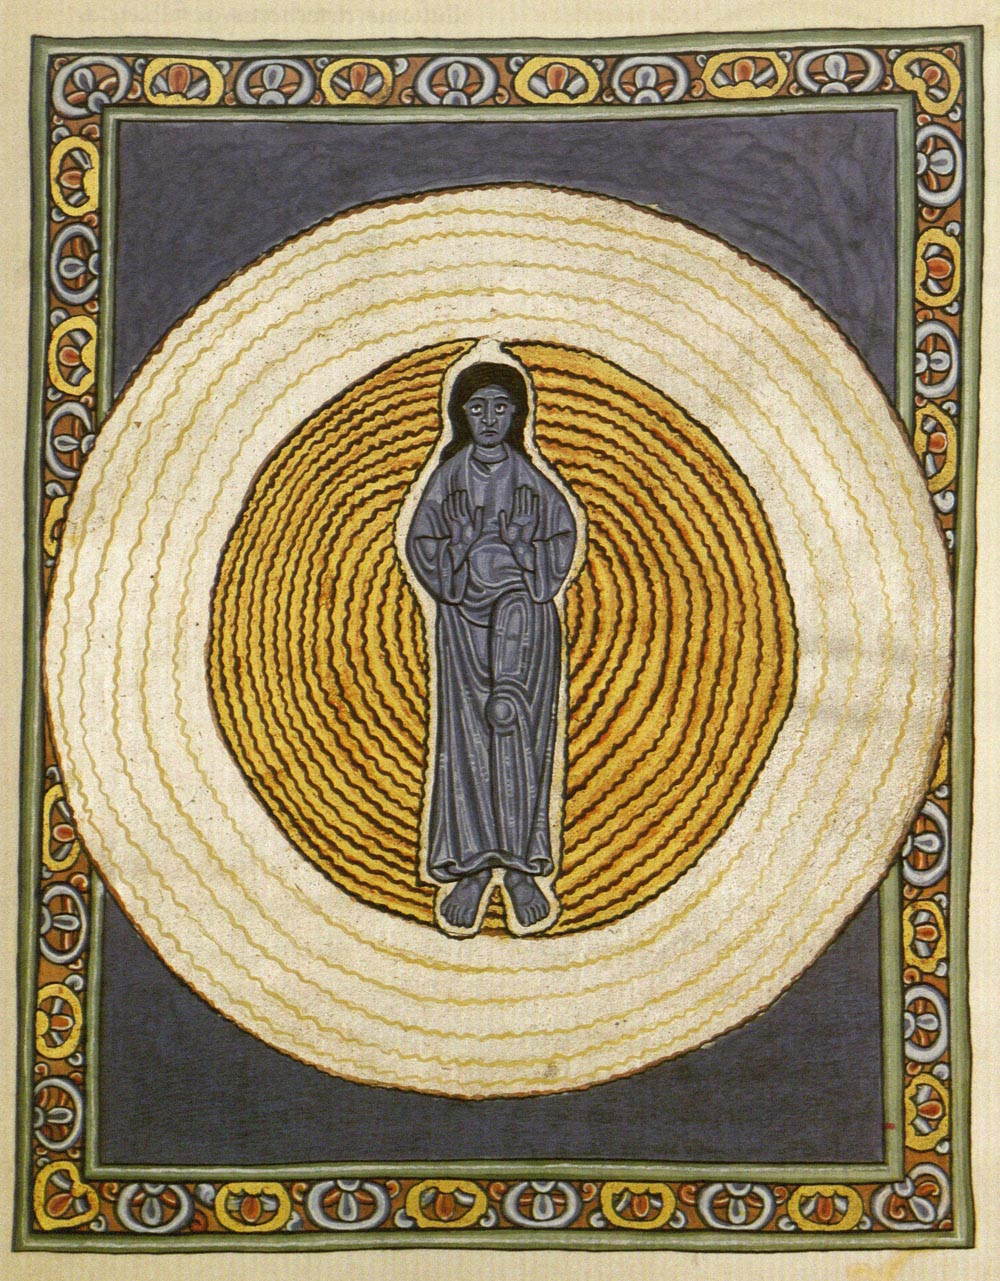 the life of hildegard von bingen Hildegard von bingen biography by timothy dickey hildegard, the first composer whose biography is known, was one of the most remarkable and forceful individuals in medieval europe.